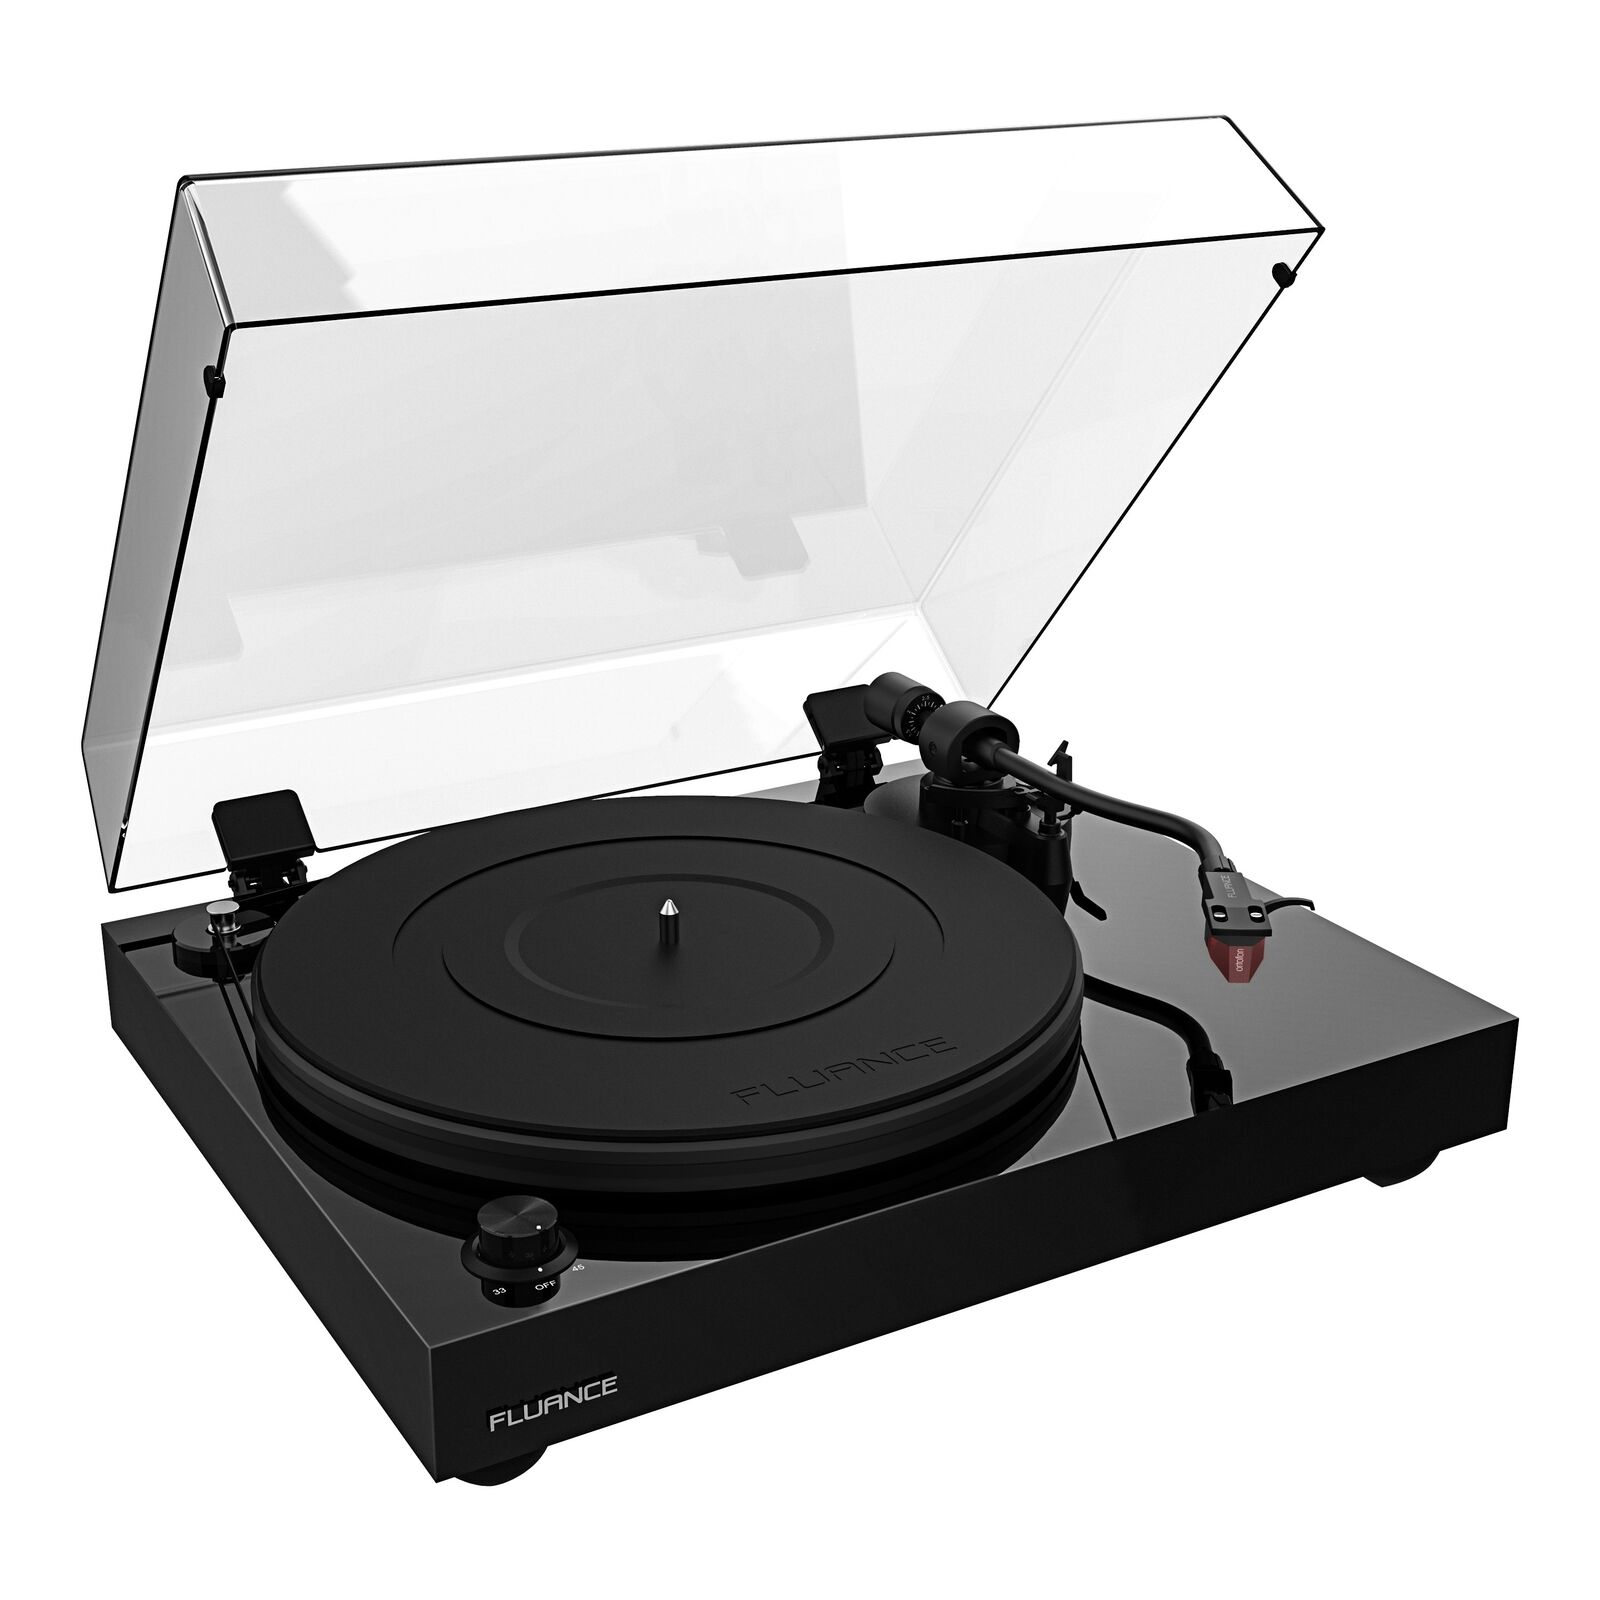 Fluance Reference High Fidelity Vinyl Turntable Record Player Ortofon Cartridge. Buy it now for 349.99